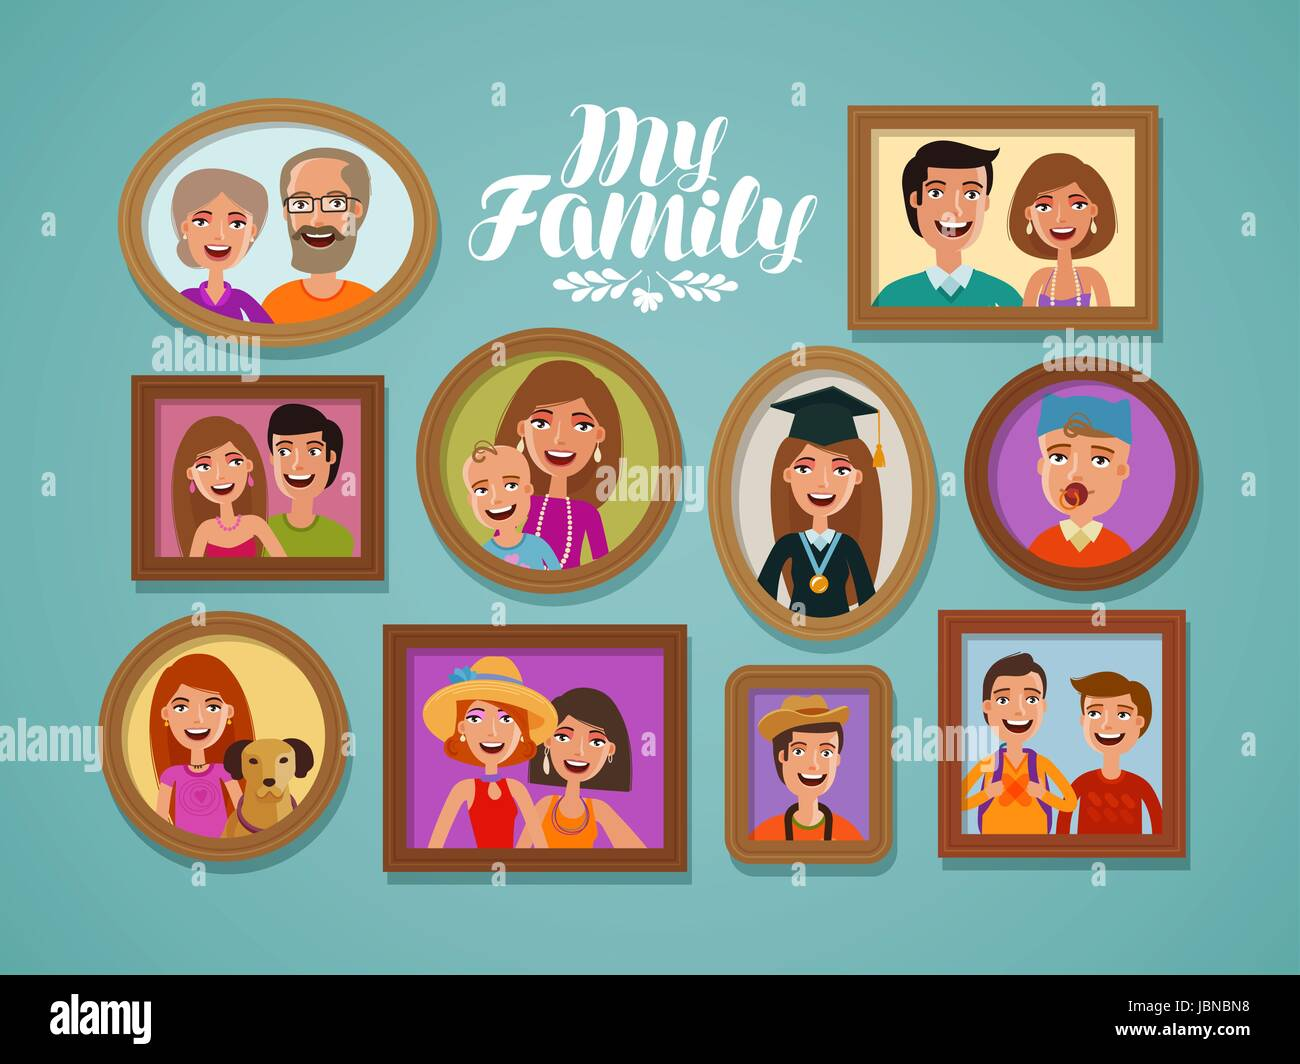 Family photos in frames. People, parents and children concept. Cartoon vector illustration - Stock Image